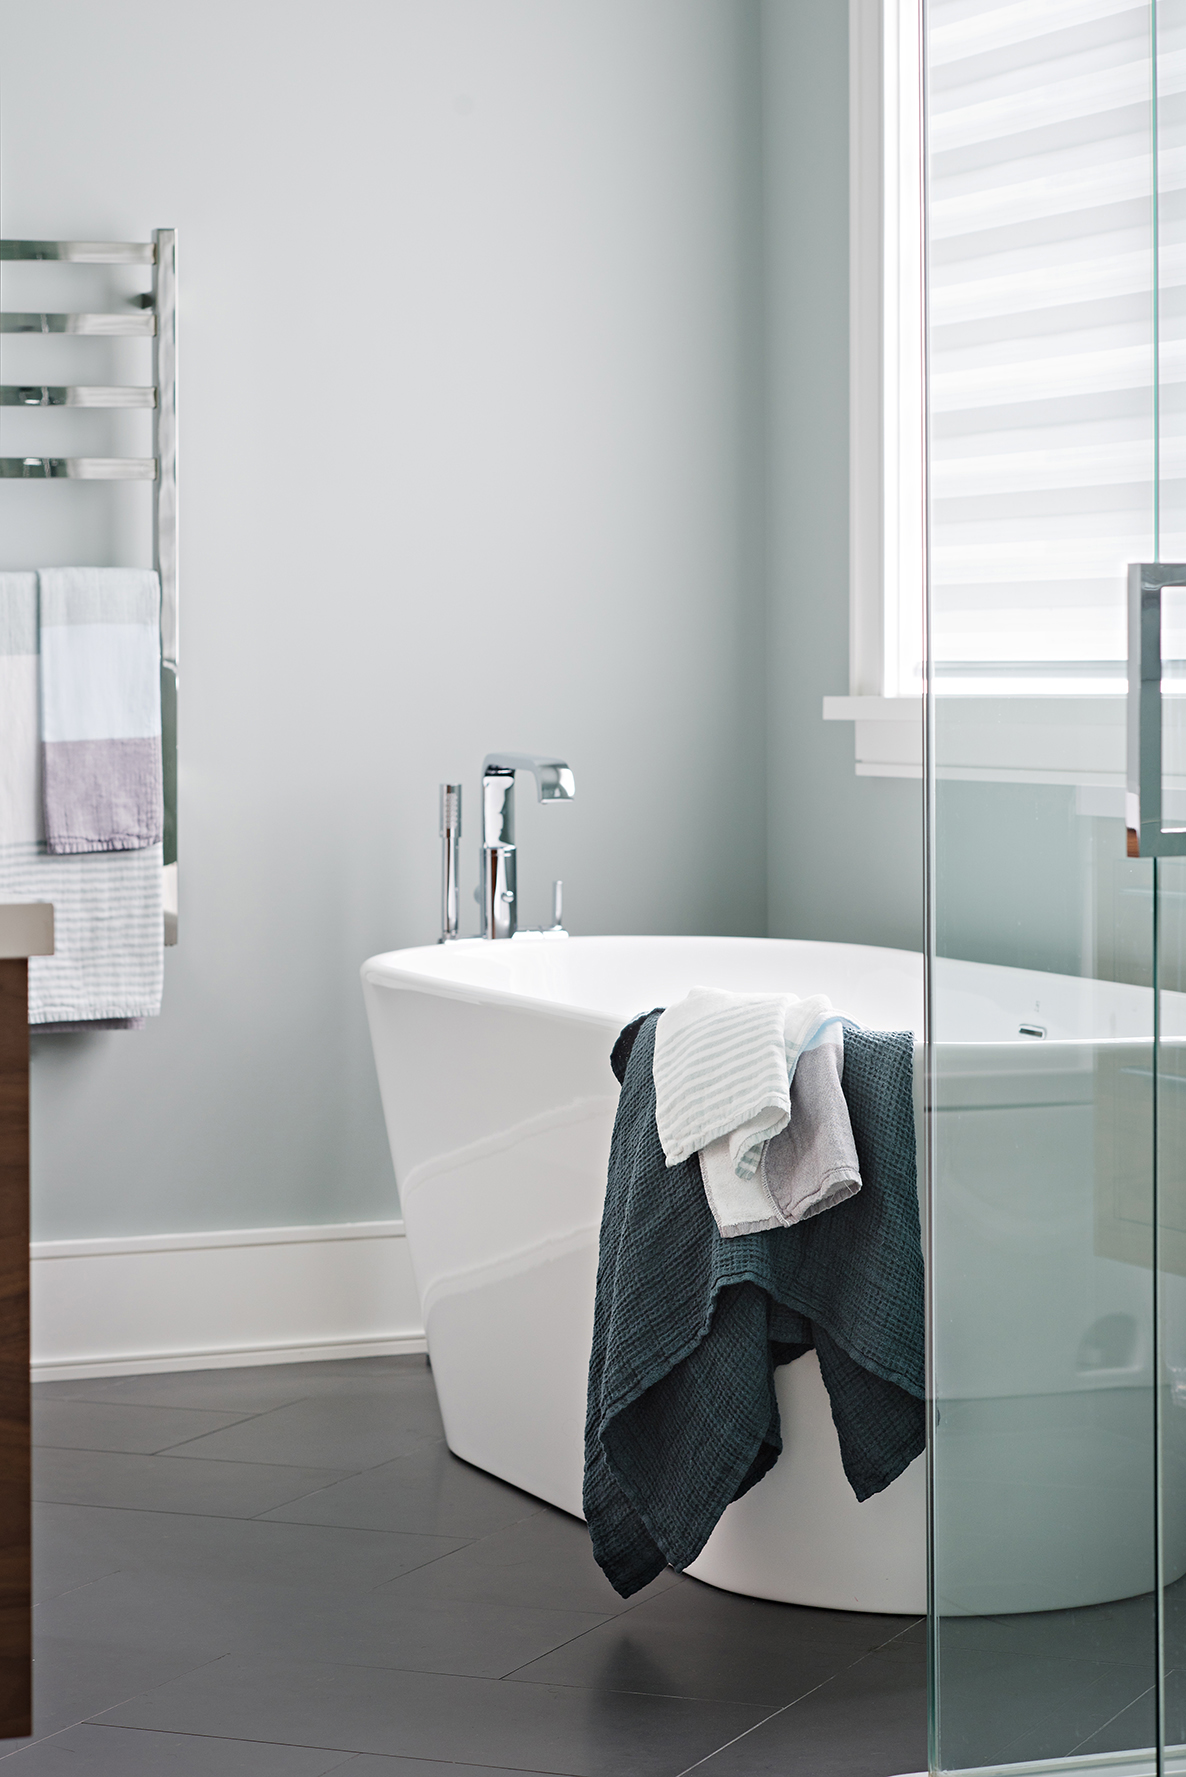 Deep soaker tub in master bathroom retreat designed by Four Blocks South residential interior designers based in Toronto, Canada.